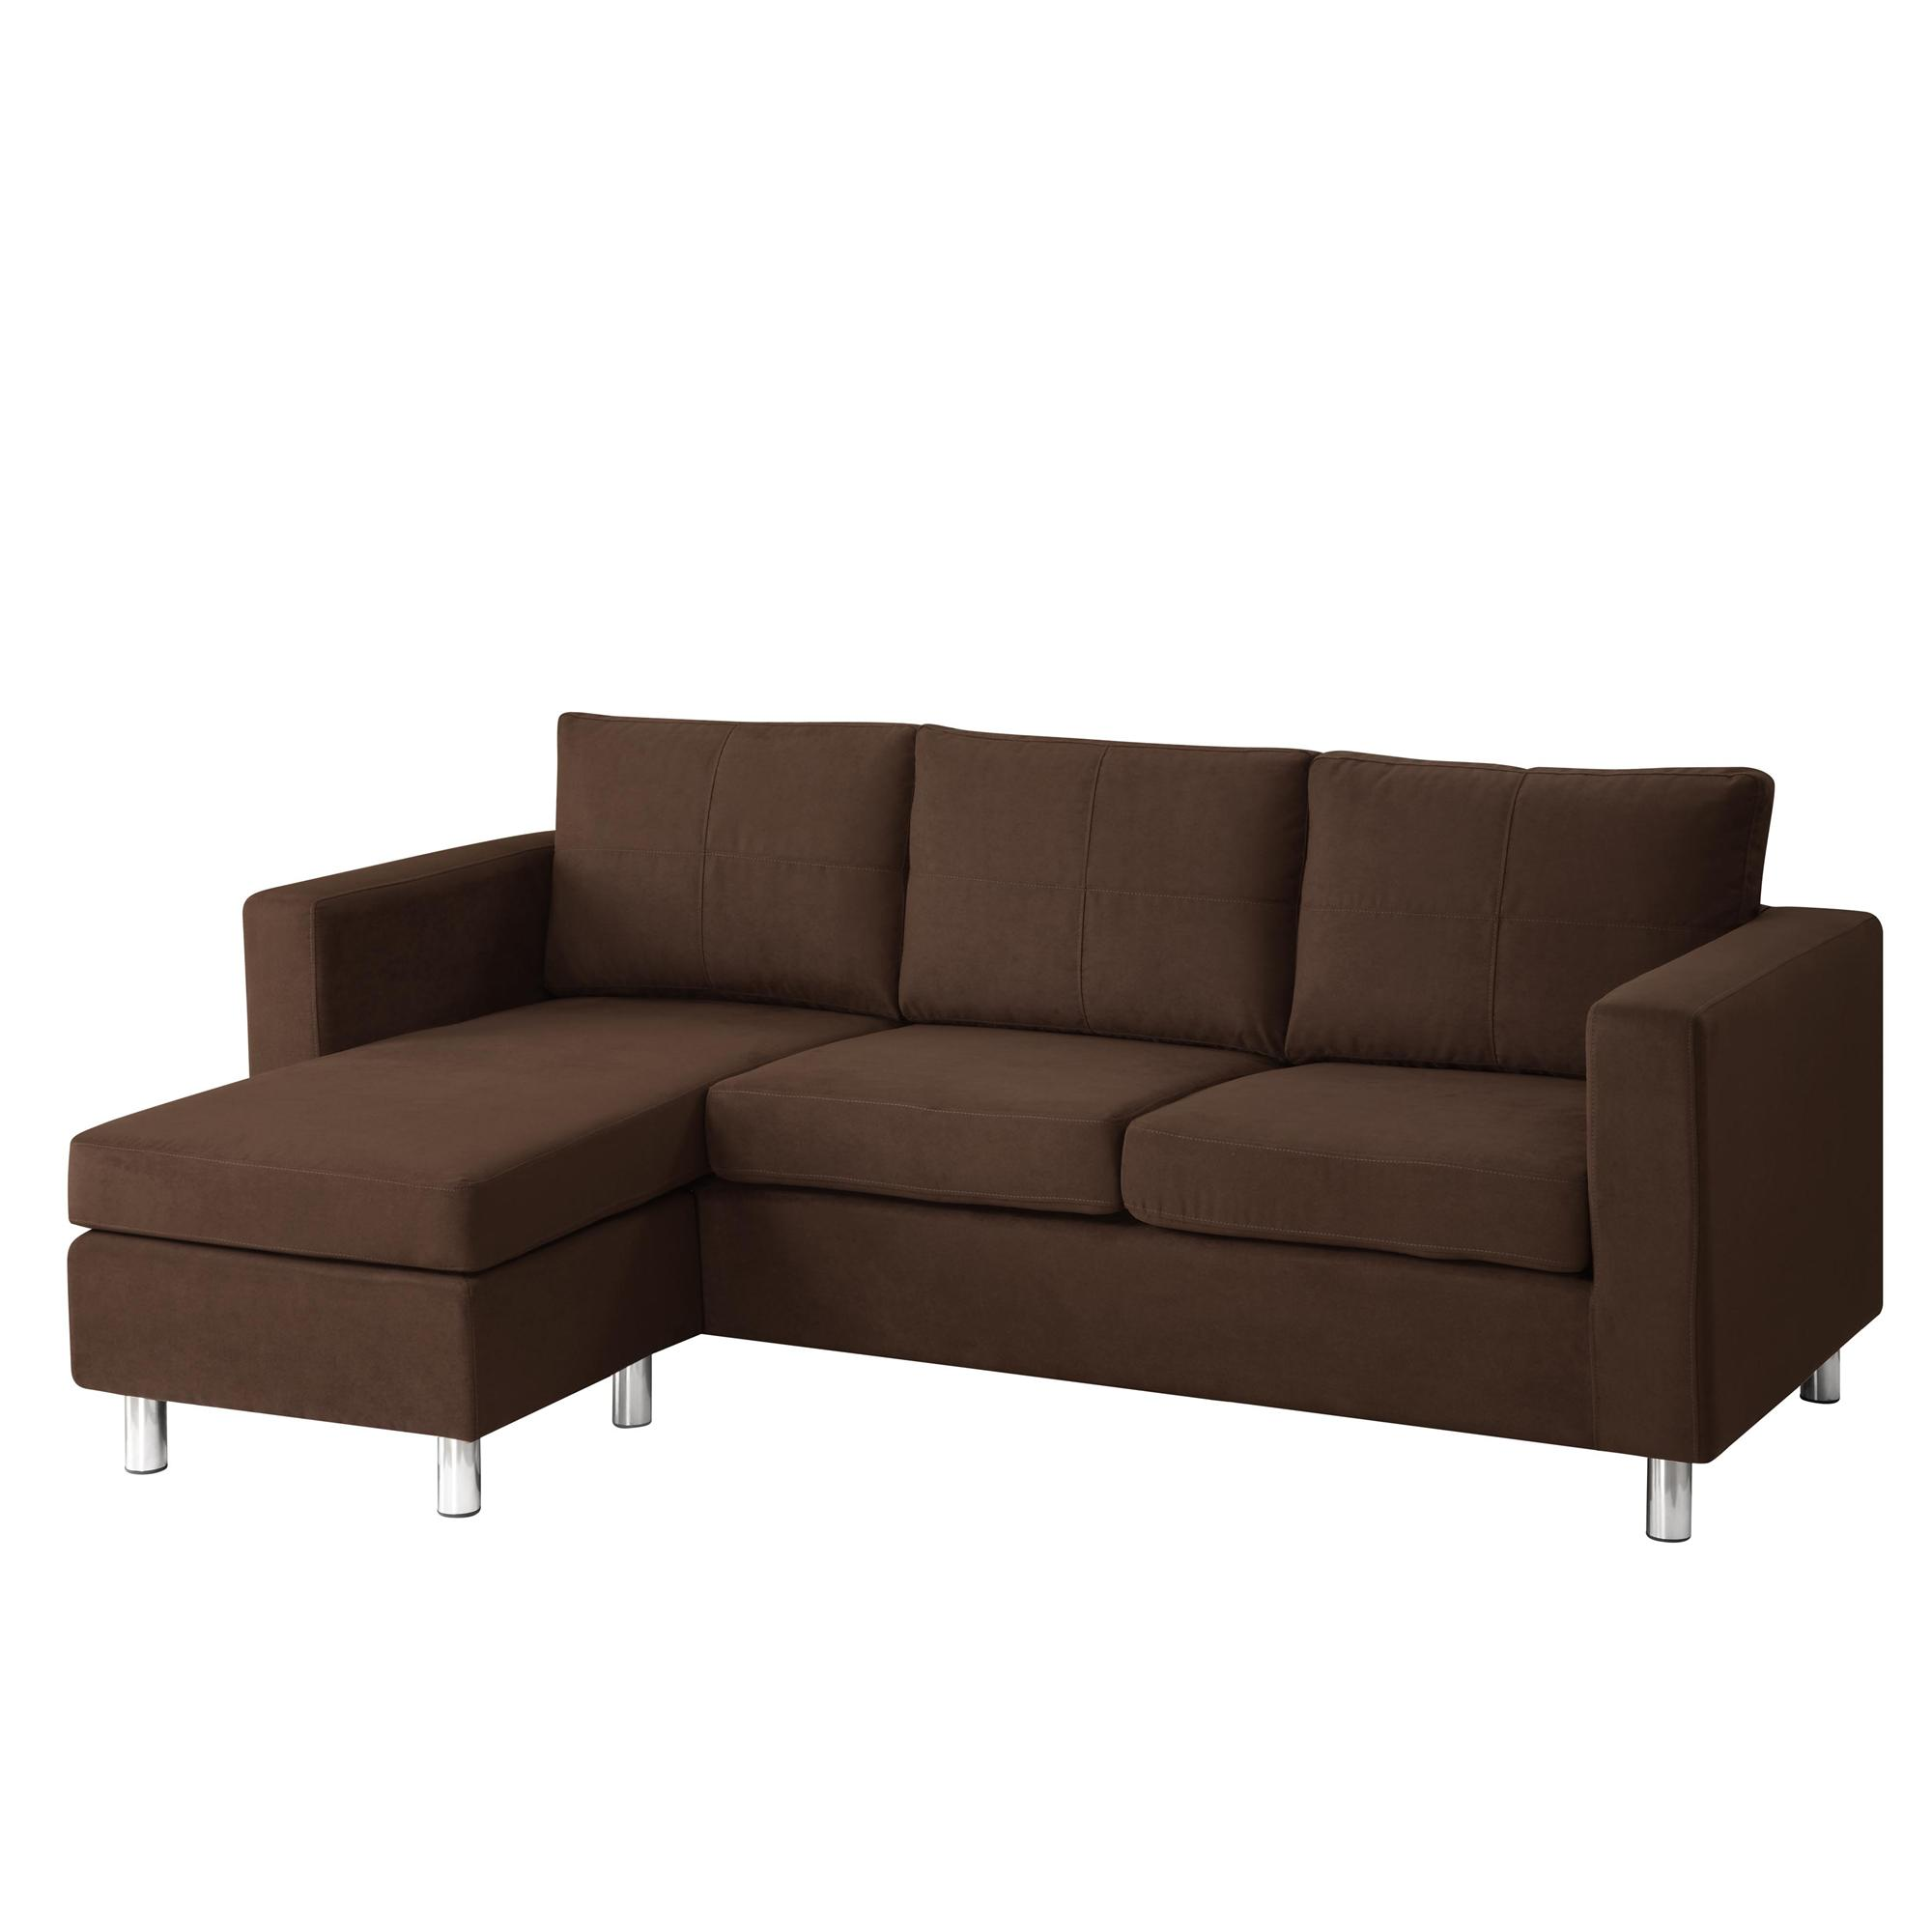 Astonishing modern minimalist brown color small sectional Small modern sofa